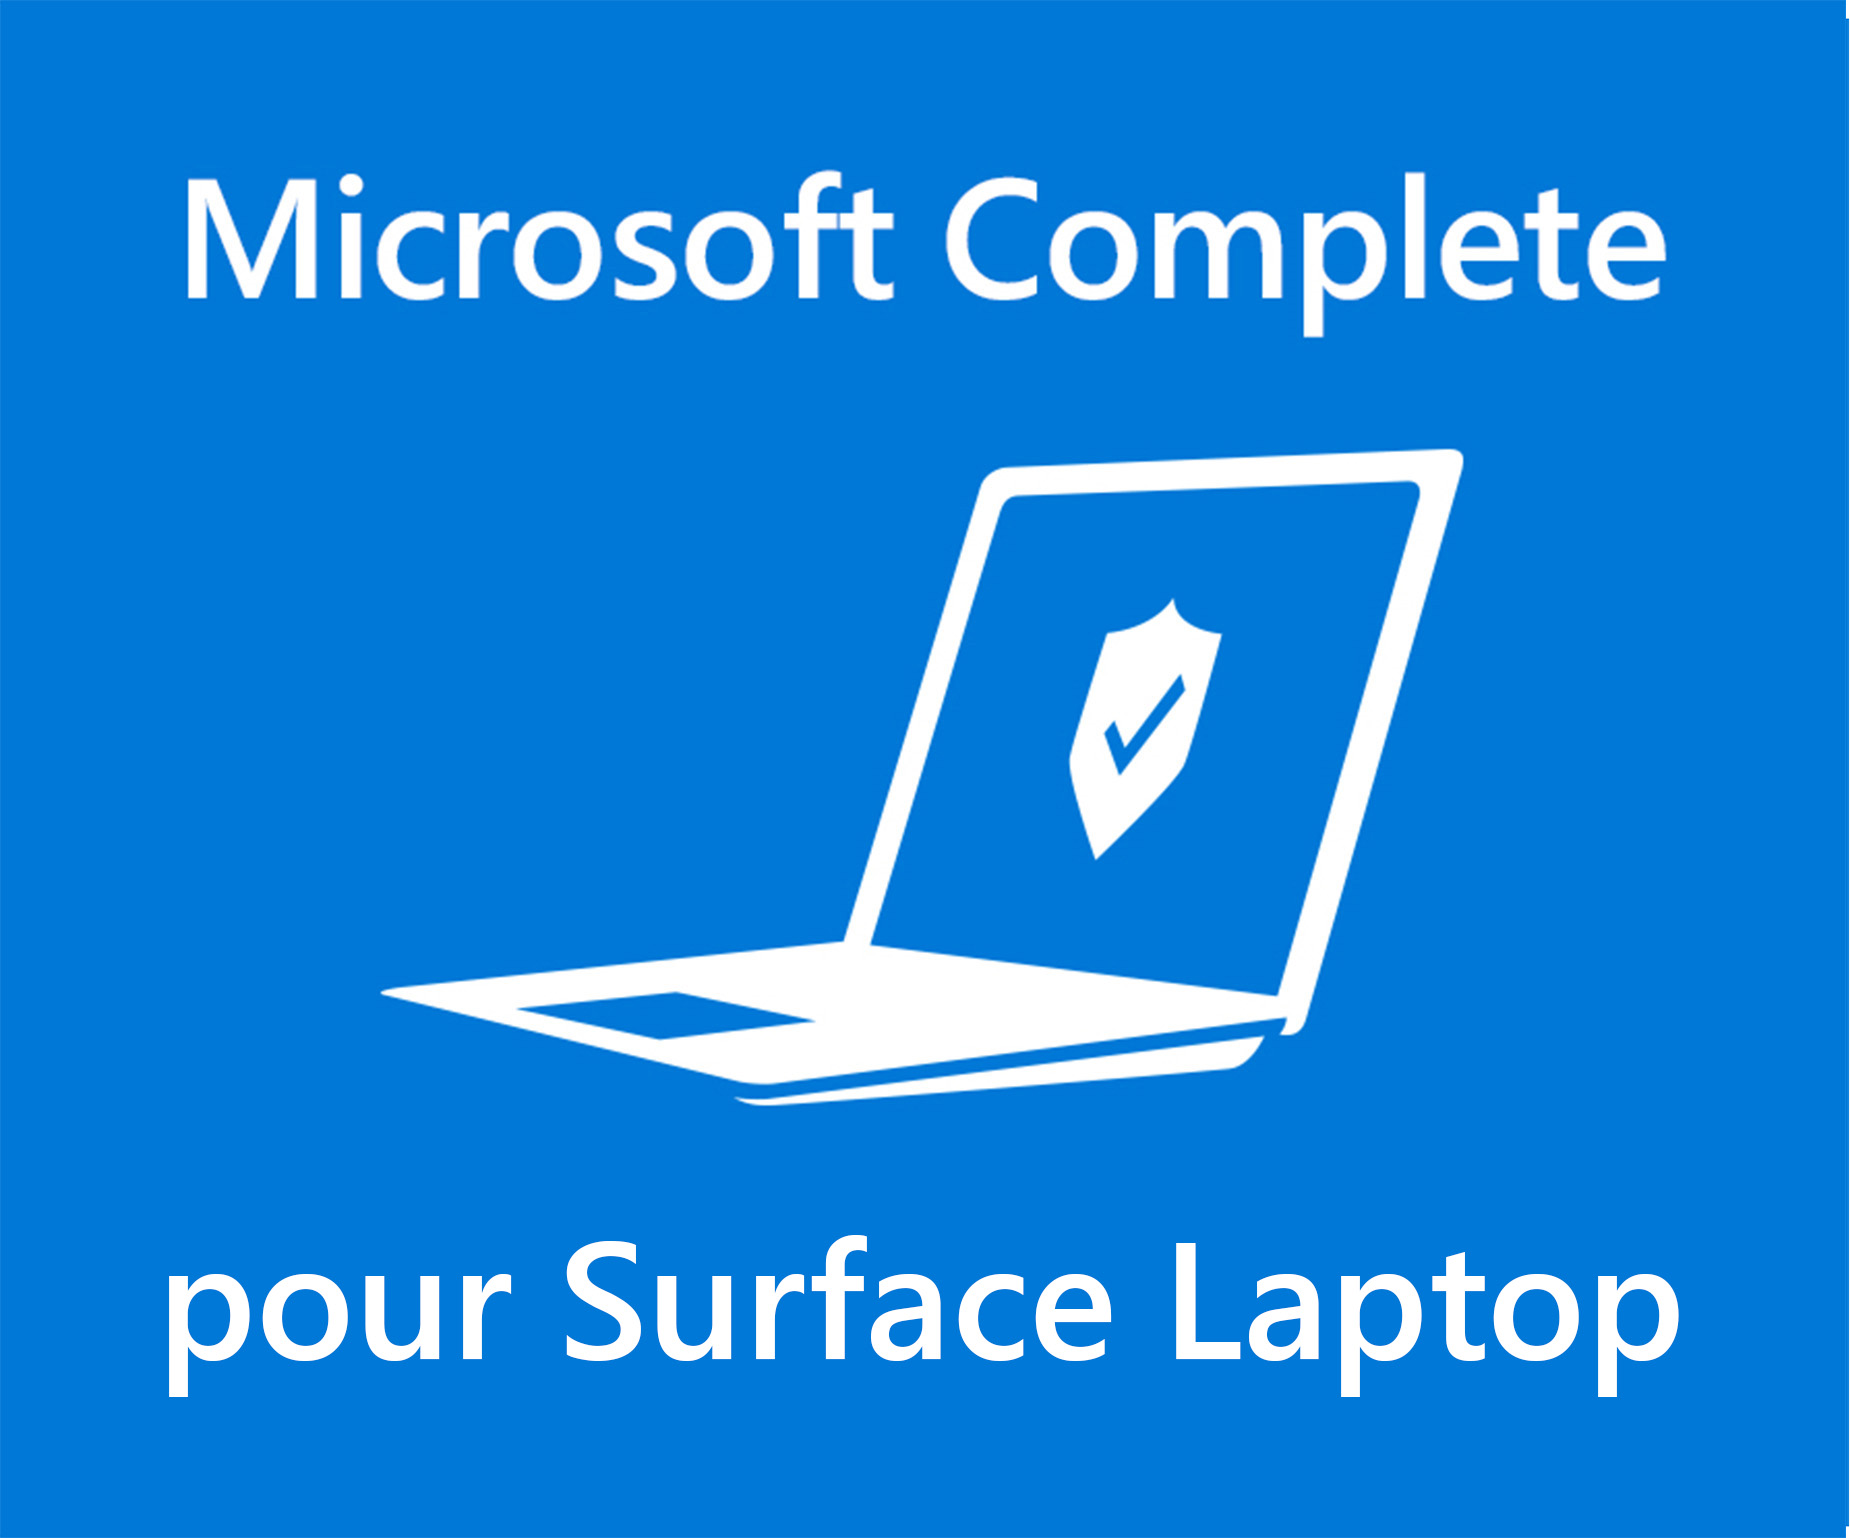 Microsoft Complete for Surface Laptop